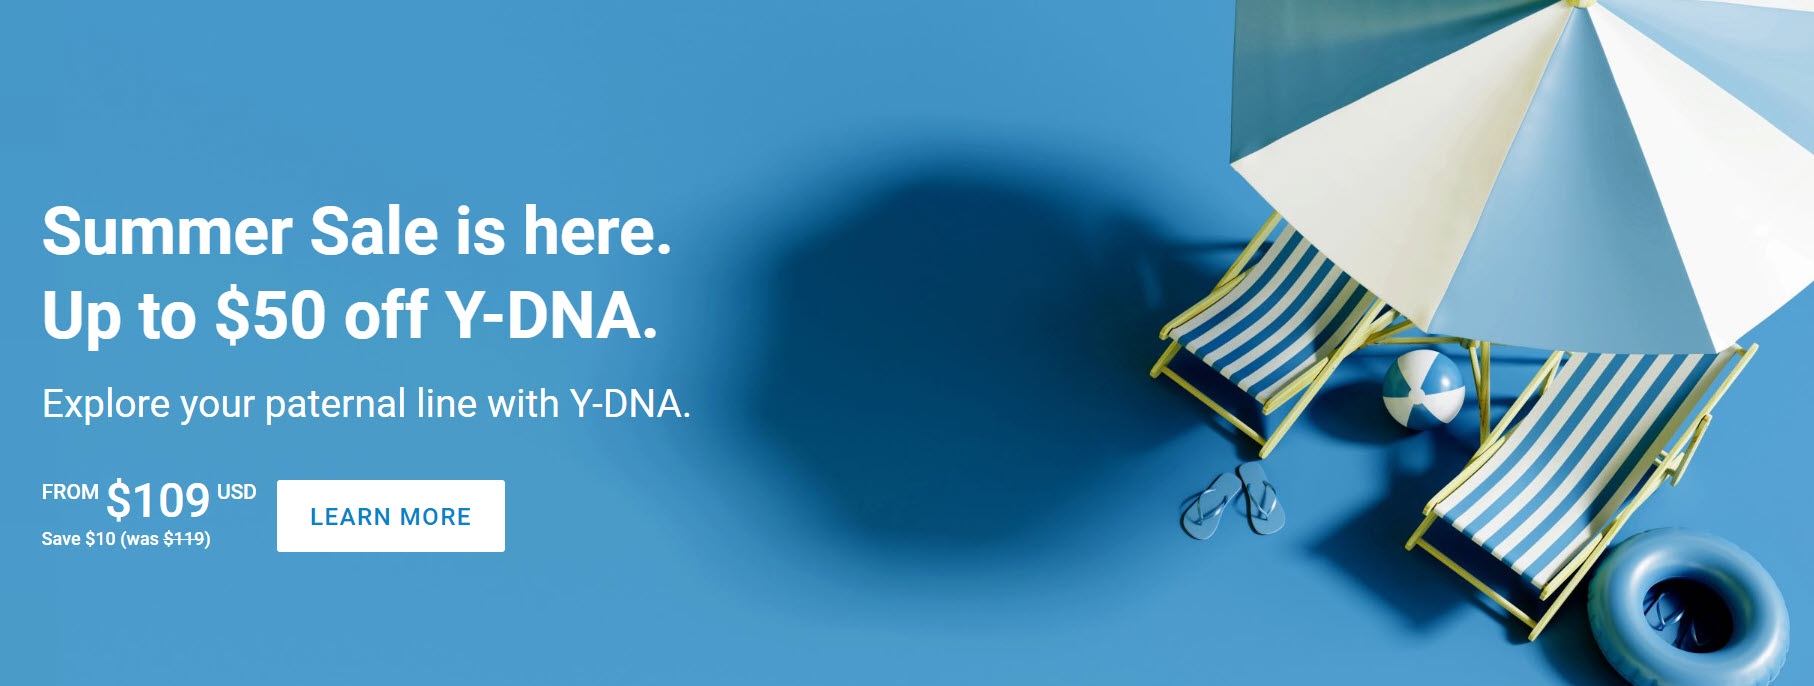 There are even more savings when you purchase these Y-DNA test kits at during the Summer Sale at FamilyTreeDNA: